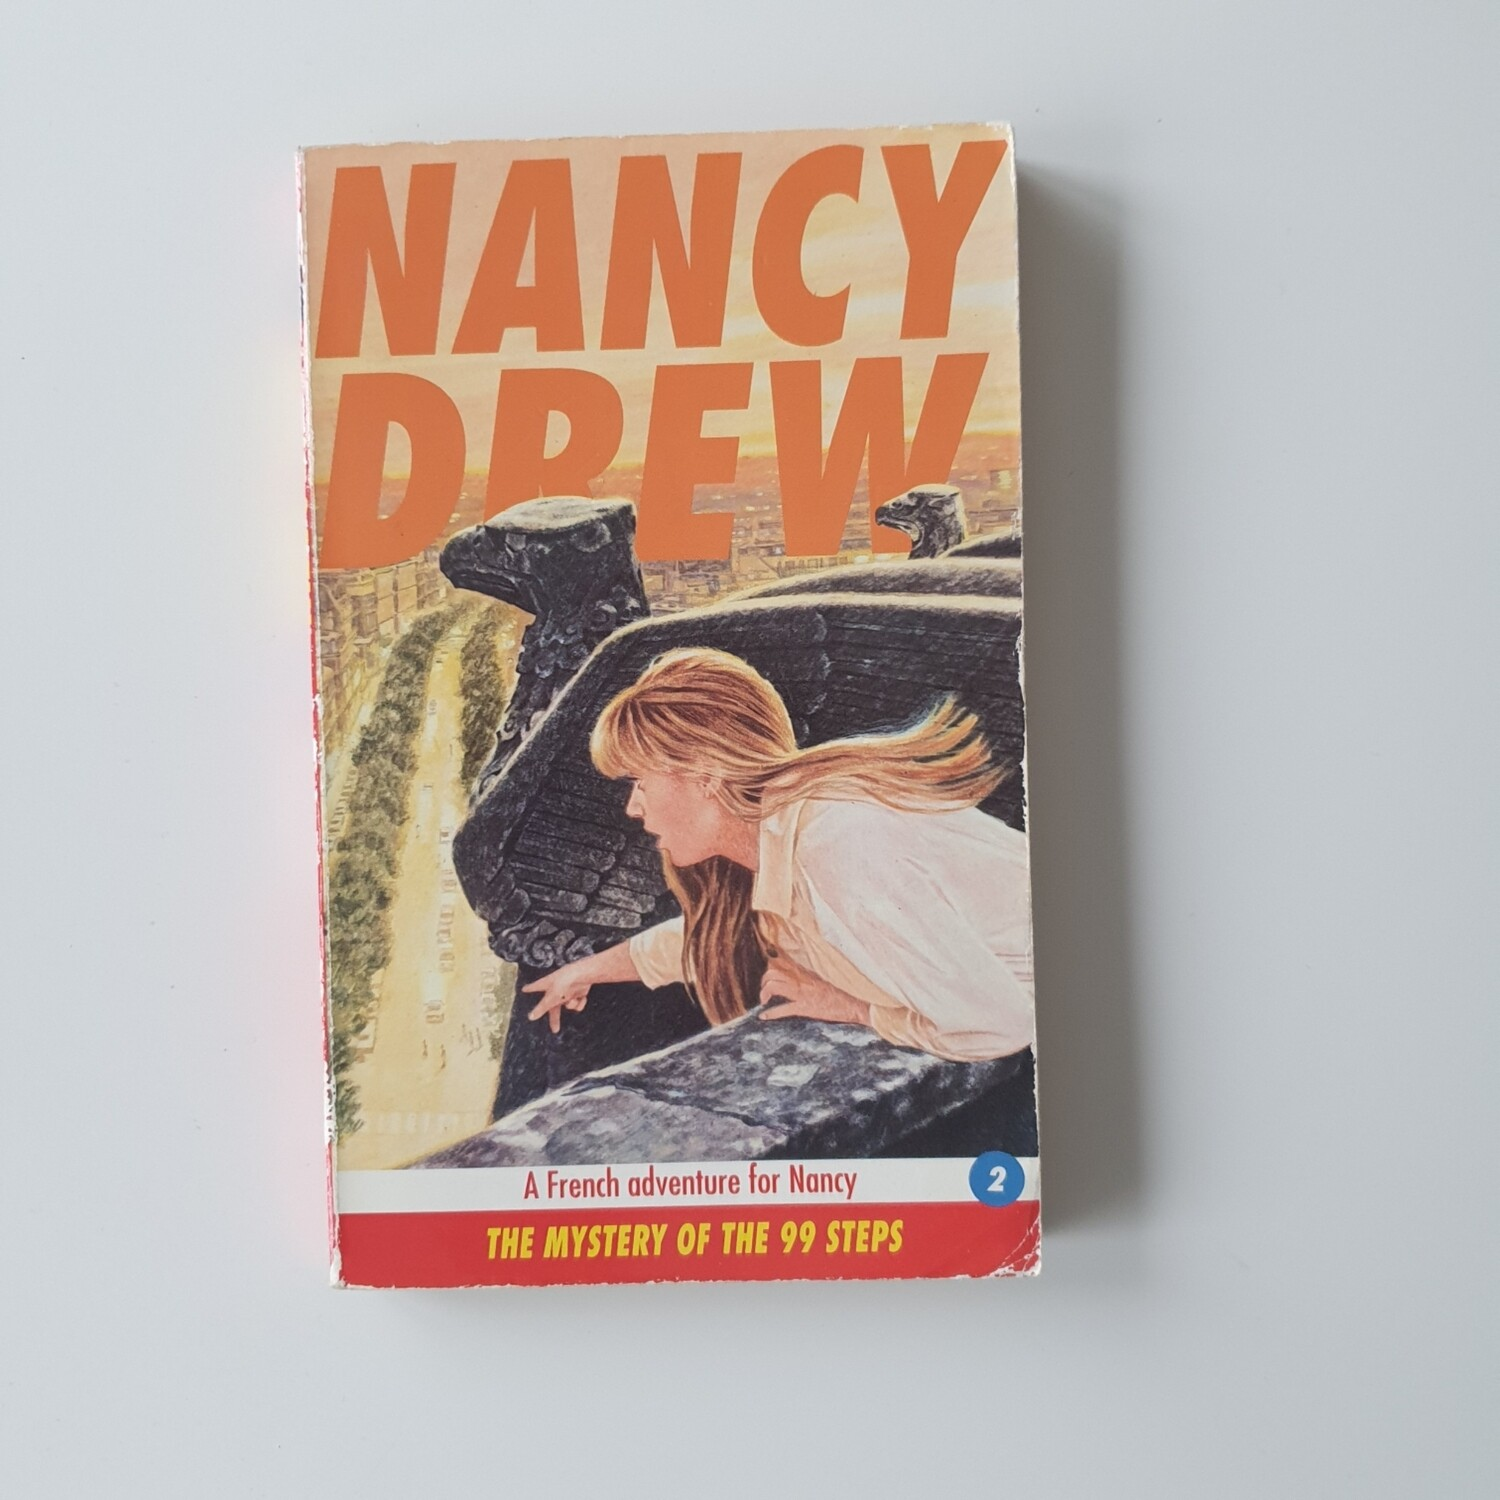 Nancy Drew Notebook - made from a paperback book